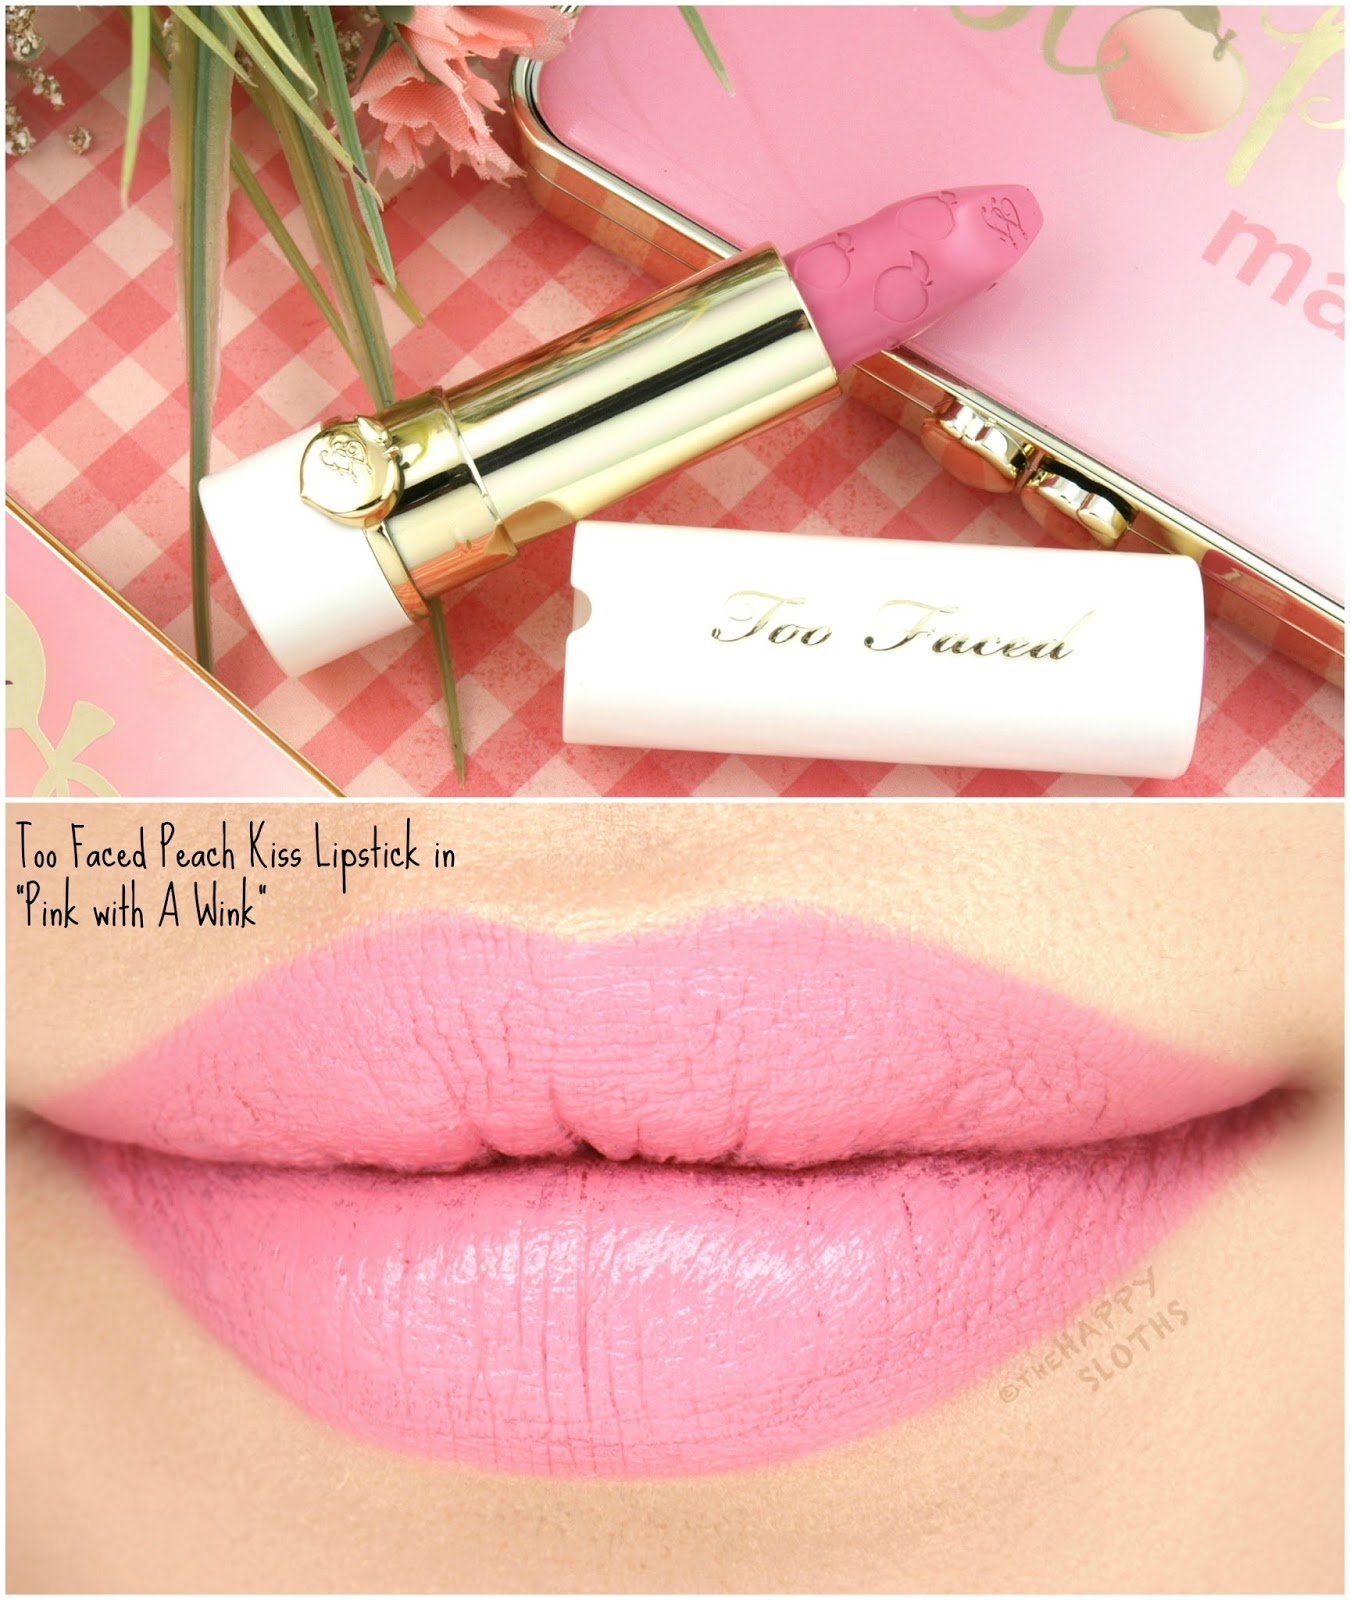 Too Faced Peach Kiss Moisture Matte Long Wear Lipstick In Pink With A Wink